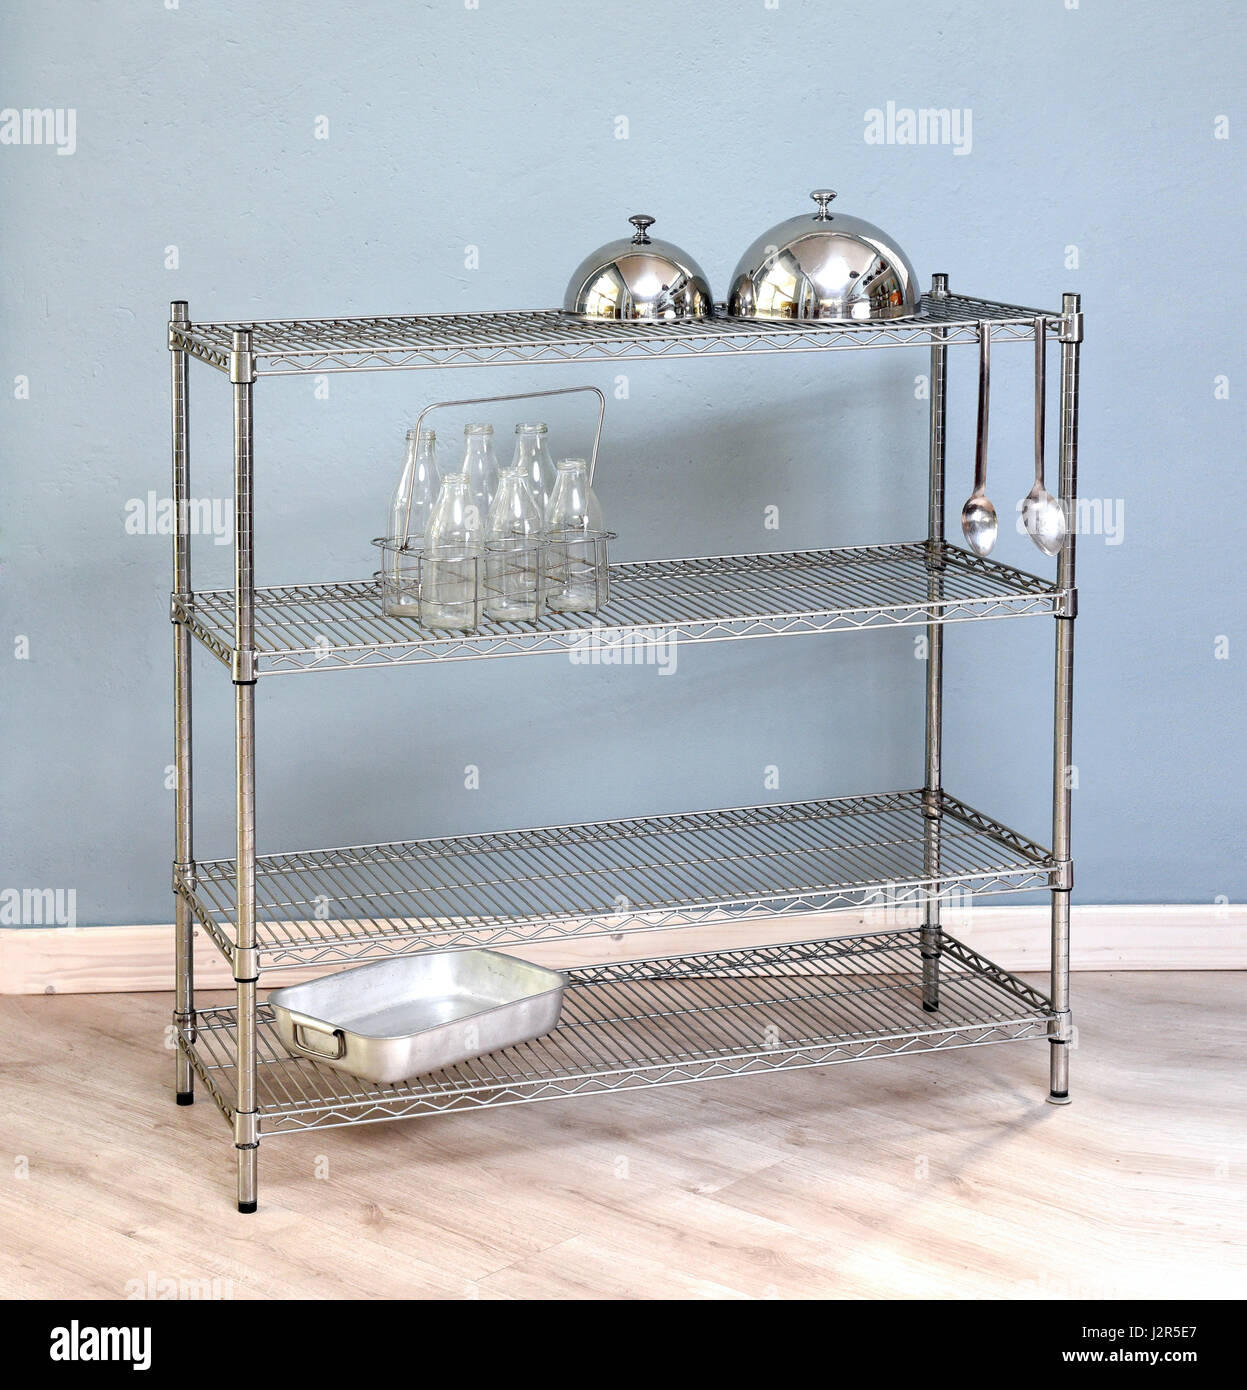 Freestanding iron kitchen shelf with rack design holding two food ...